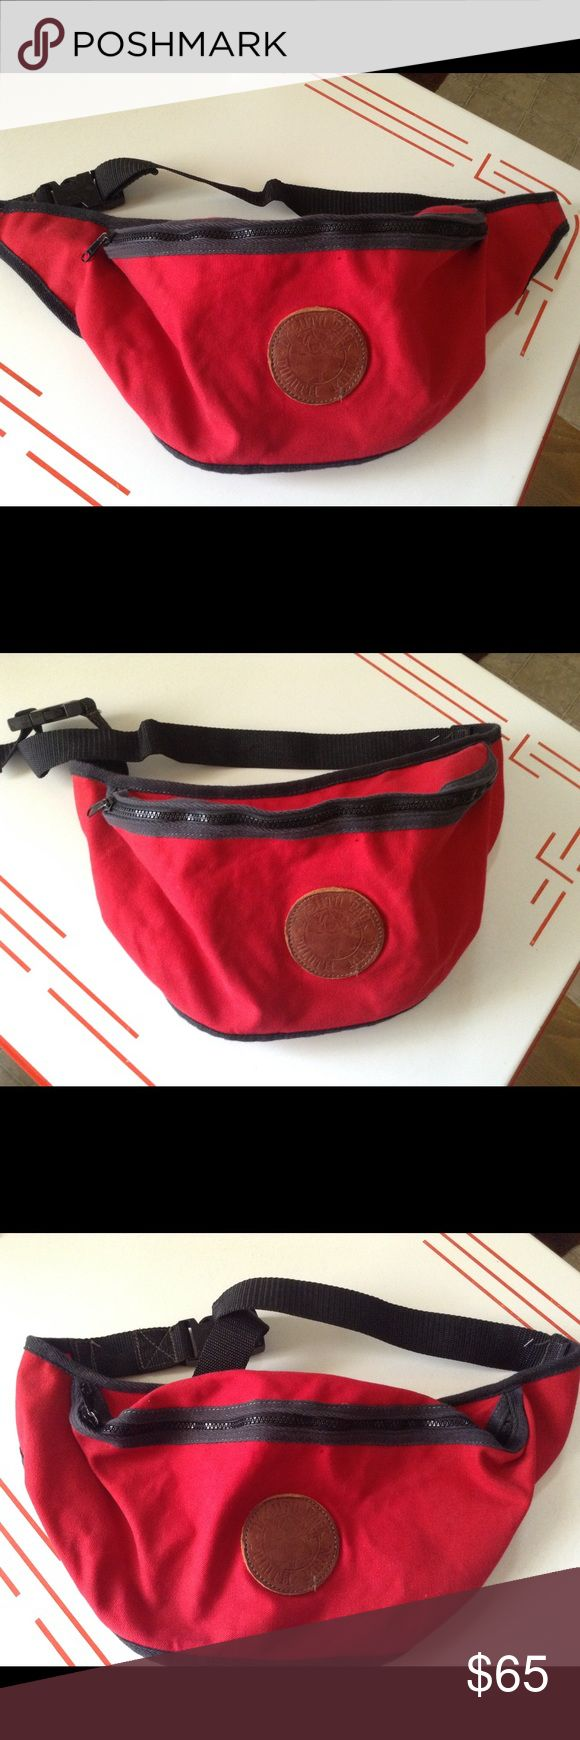 Duluth Pack Large Fanny Pack Duluth Pack brand Large size fanny pack. Cherry red canvas with leather detail. Red is a discontinued color and is in great shape. No rips, holes or any damage. Heavy duty zipper and buckle. Can be worn around the waist, or over your head and shoulder like a sling bag. Duluth Pack Bags Backpacks